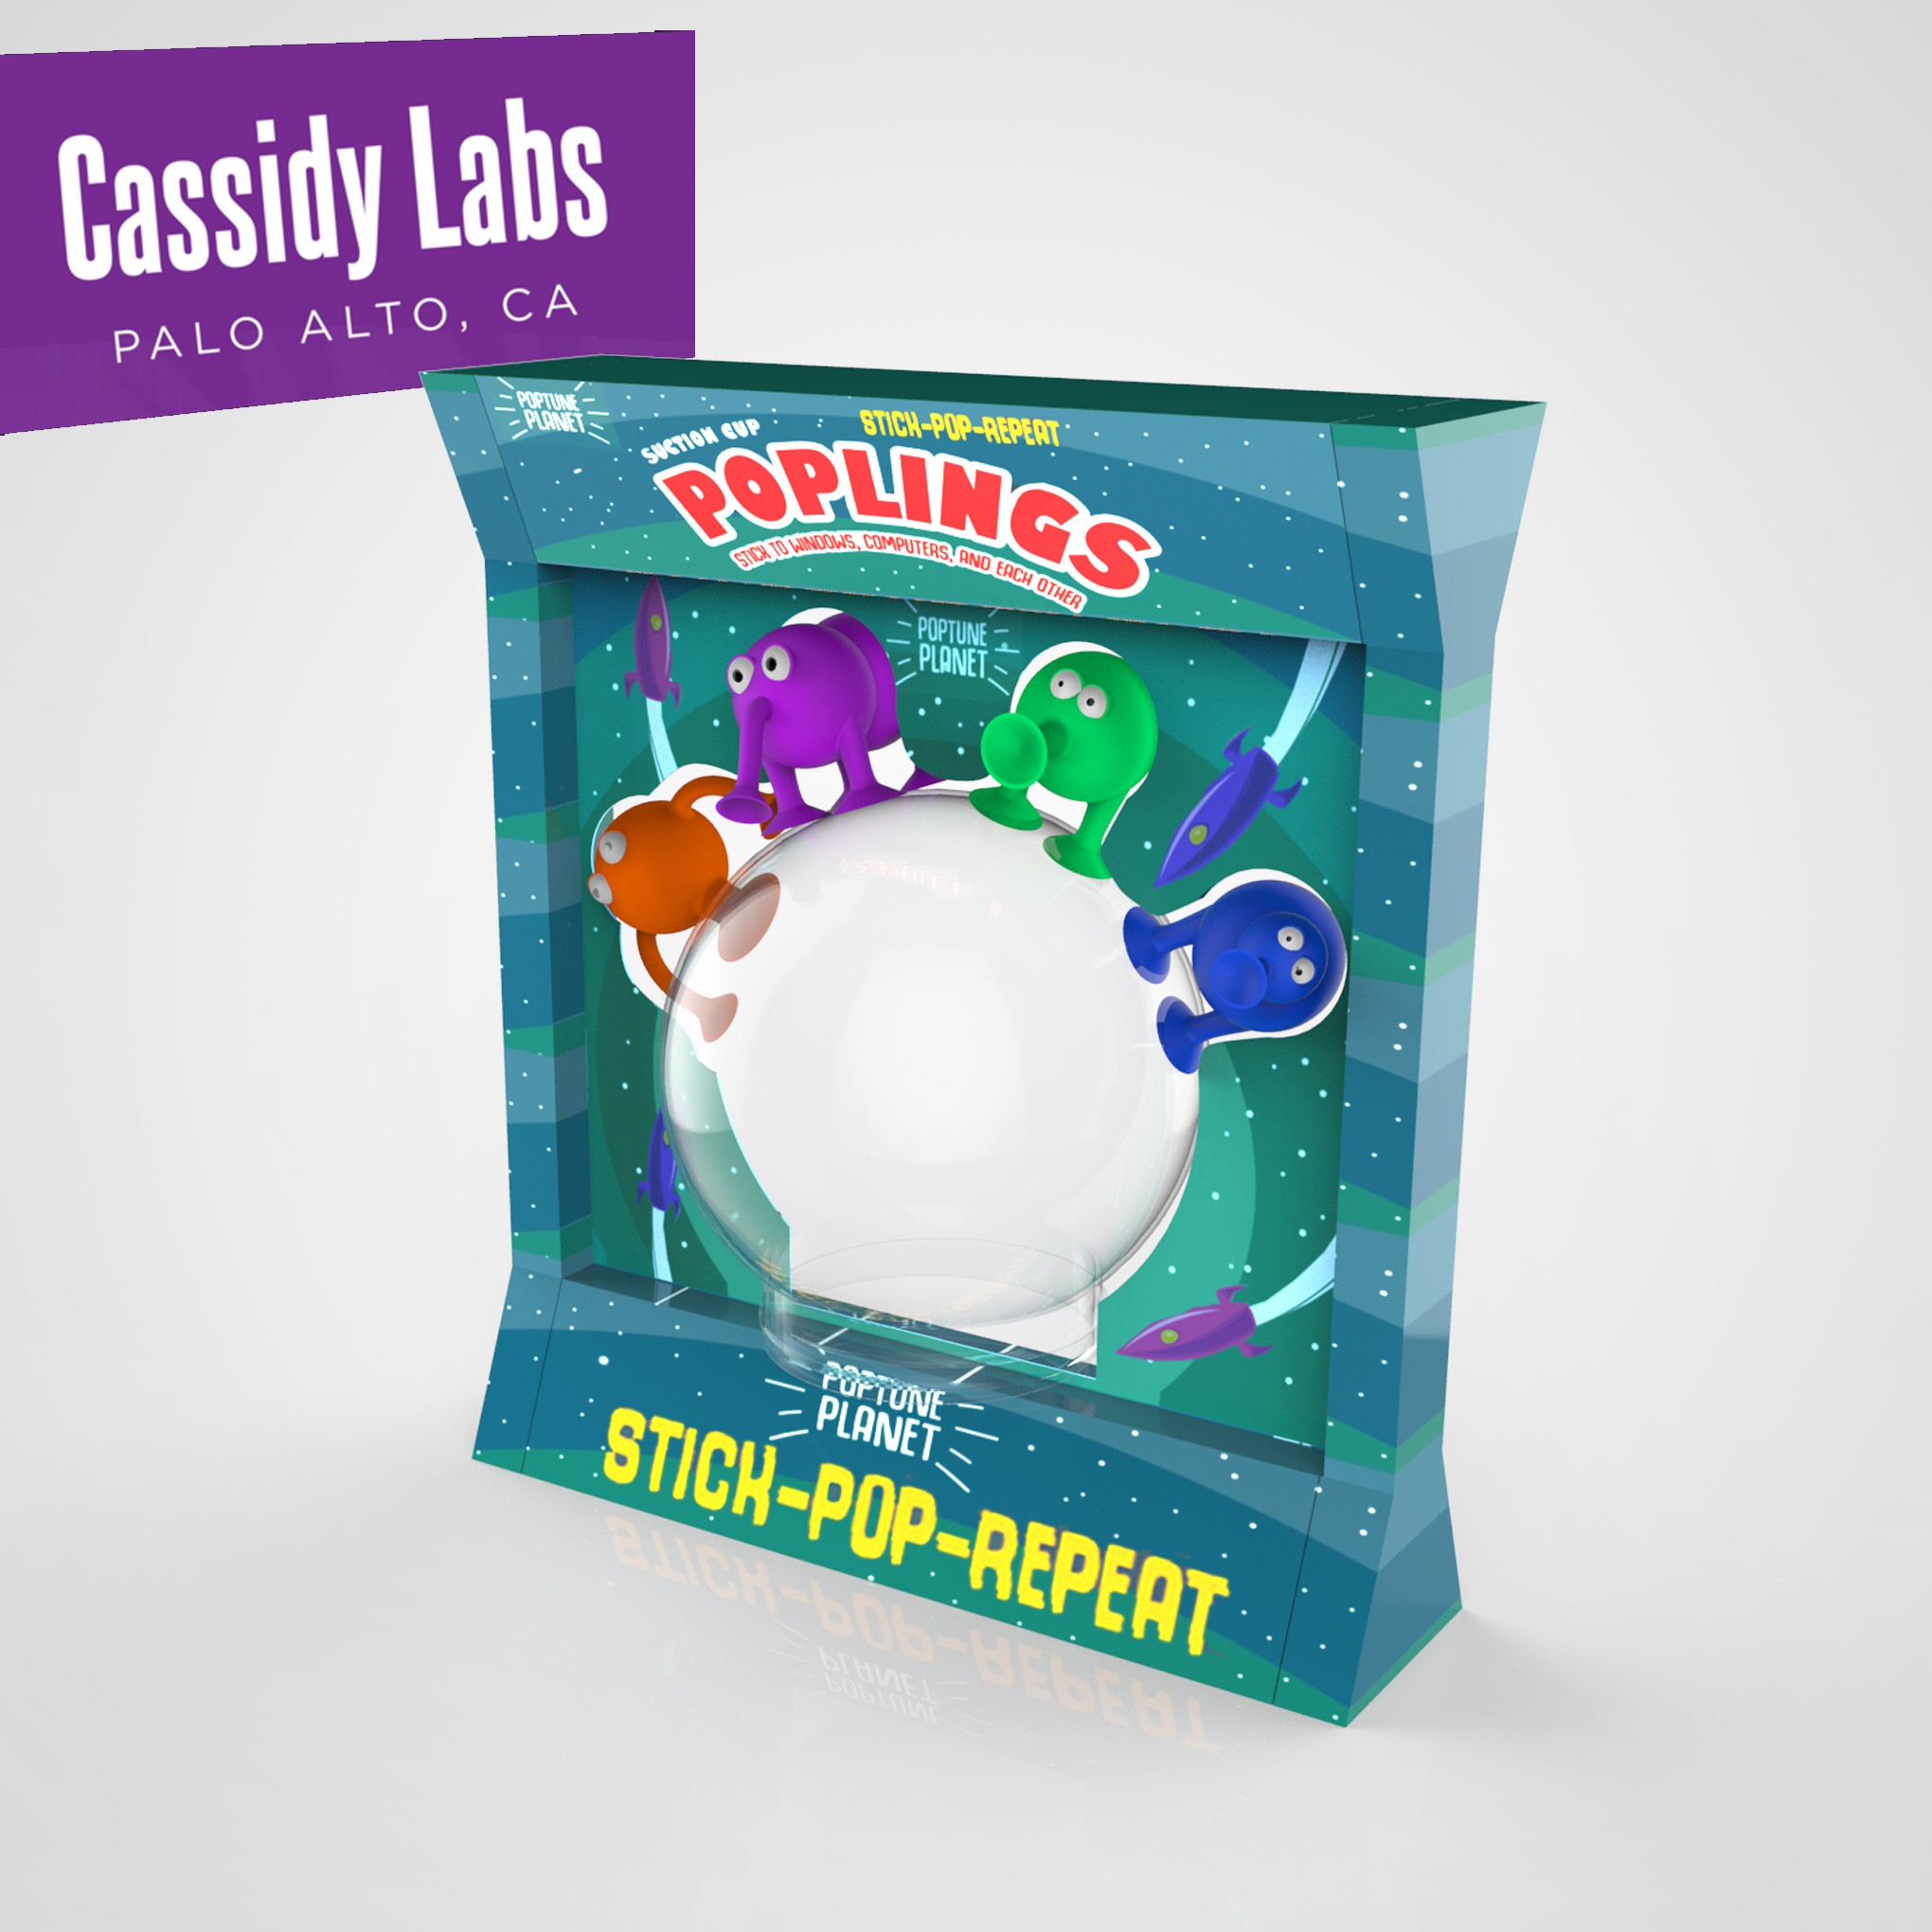 4 Poplings Blister Packaging Render